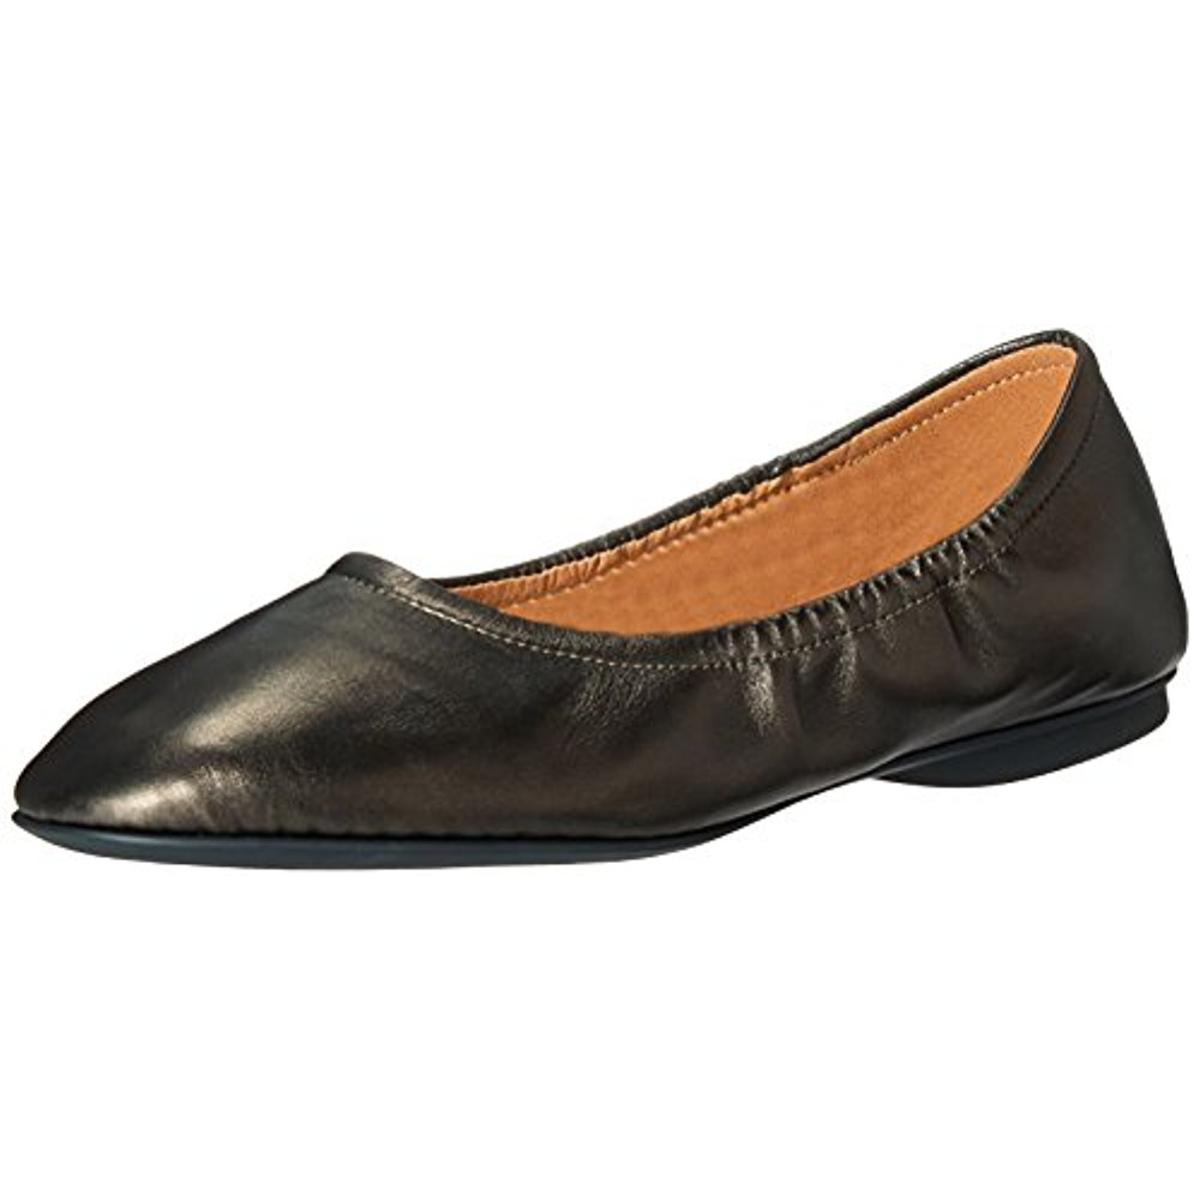 ECCO Womens Taisha Leather Round Toe Ballet Flats by Ecco